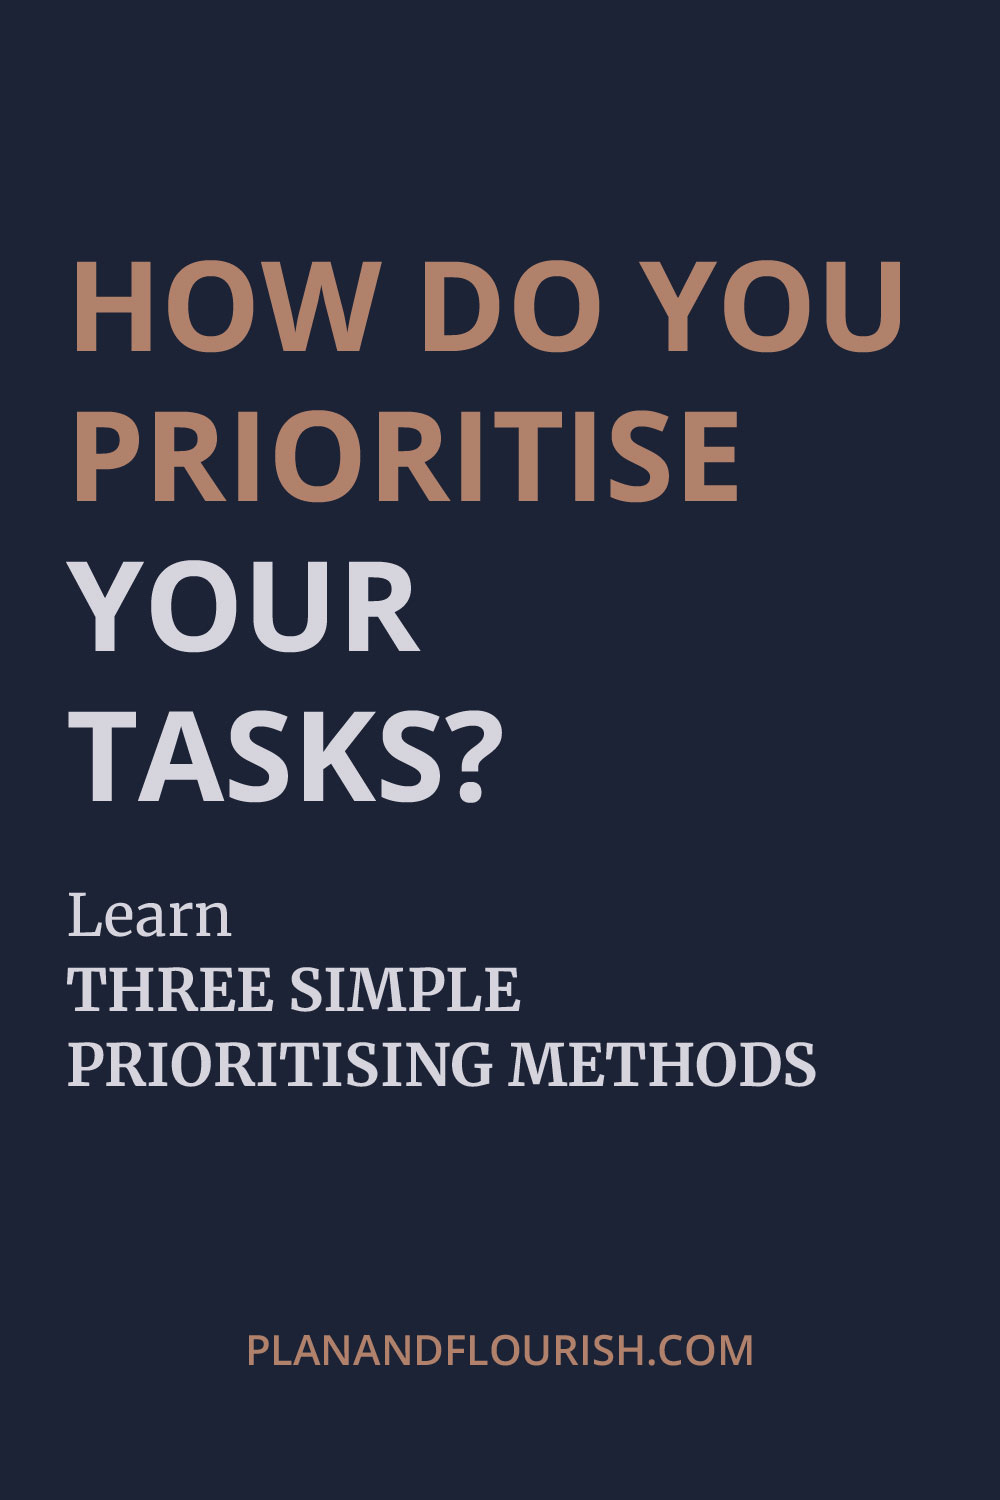 How Do You Prioritise Your Tasks? Learn 3 Simple Prioritising Methods | Read It Now